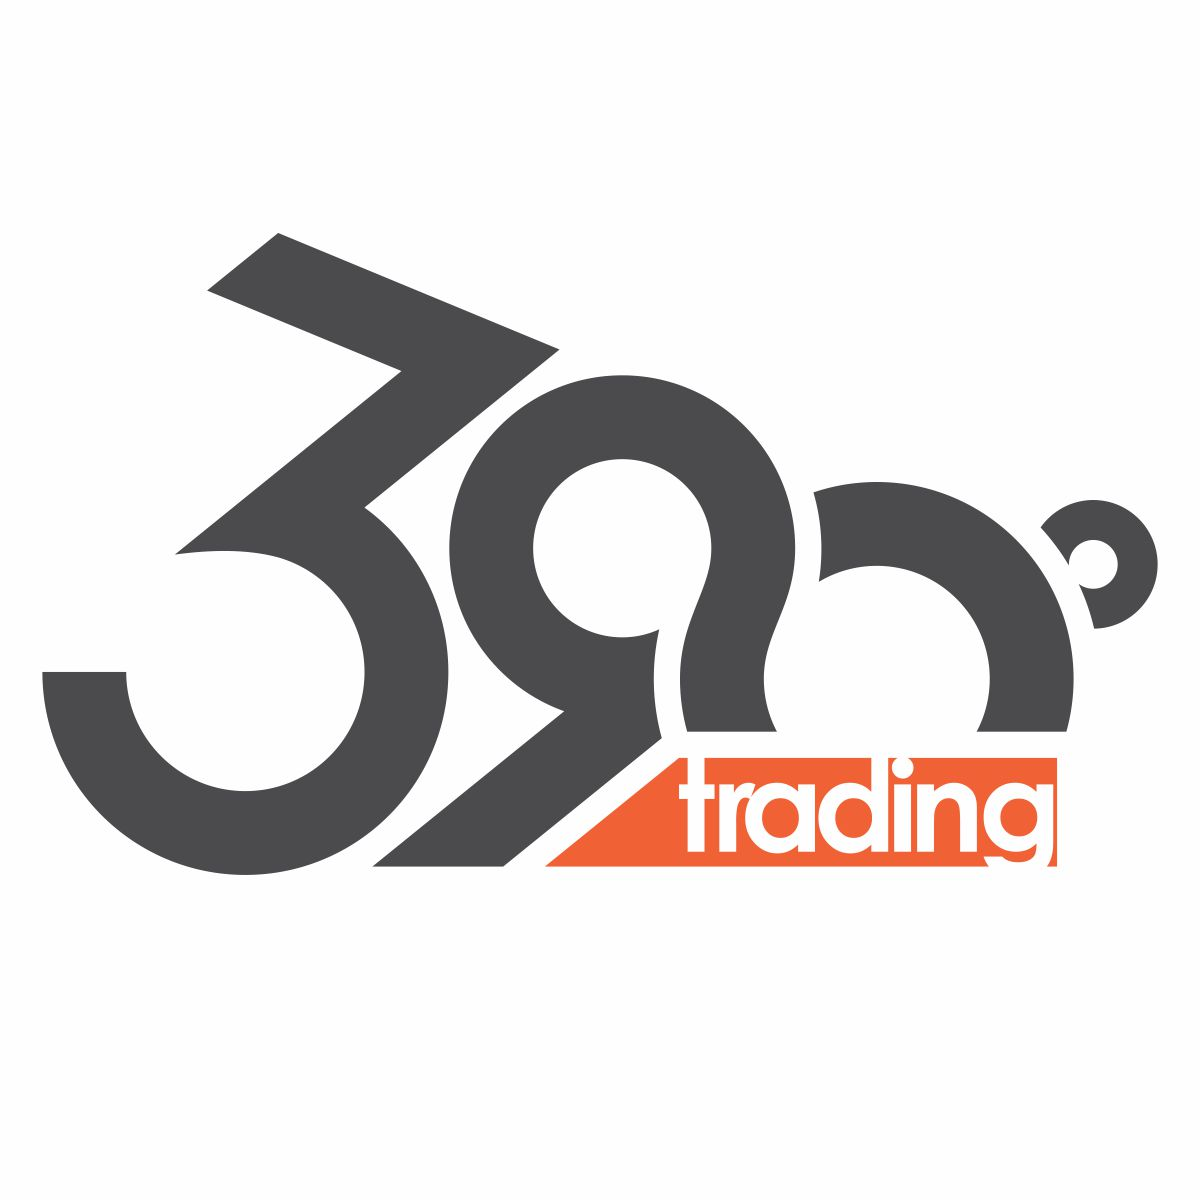 390 Degrees Trading, Free Online Business Directory South